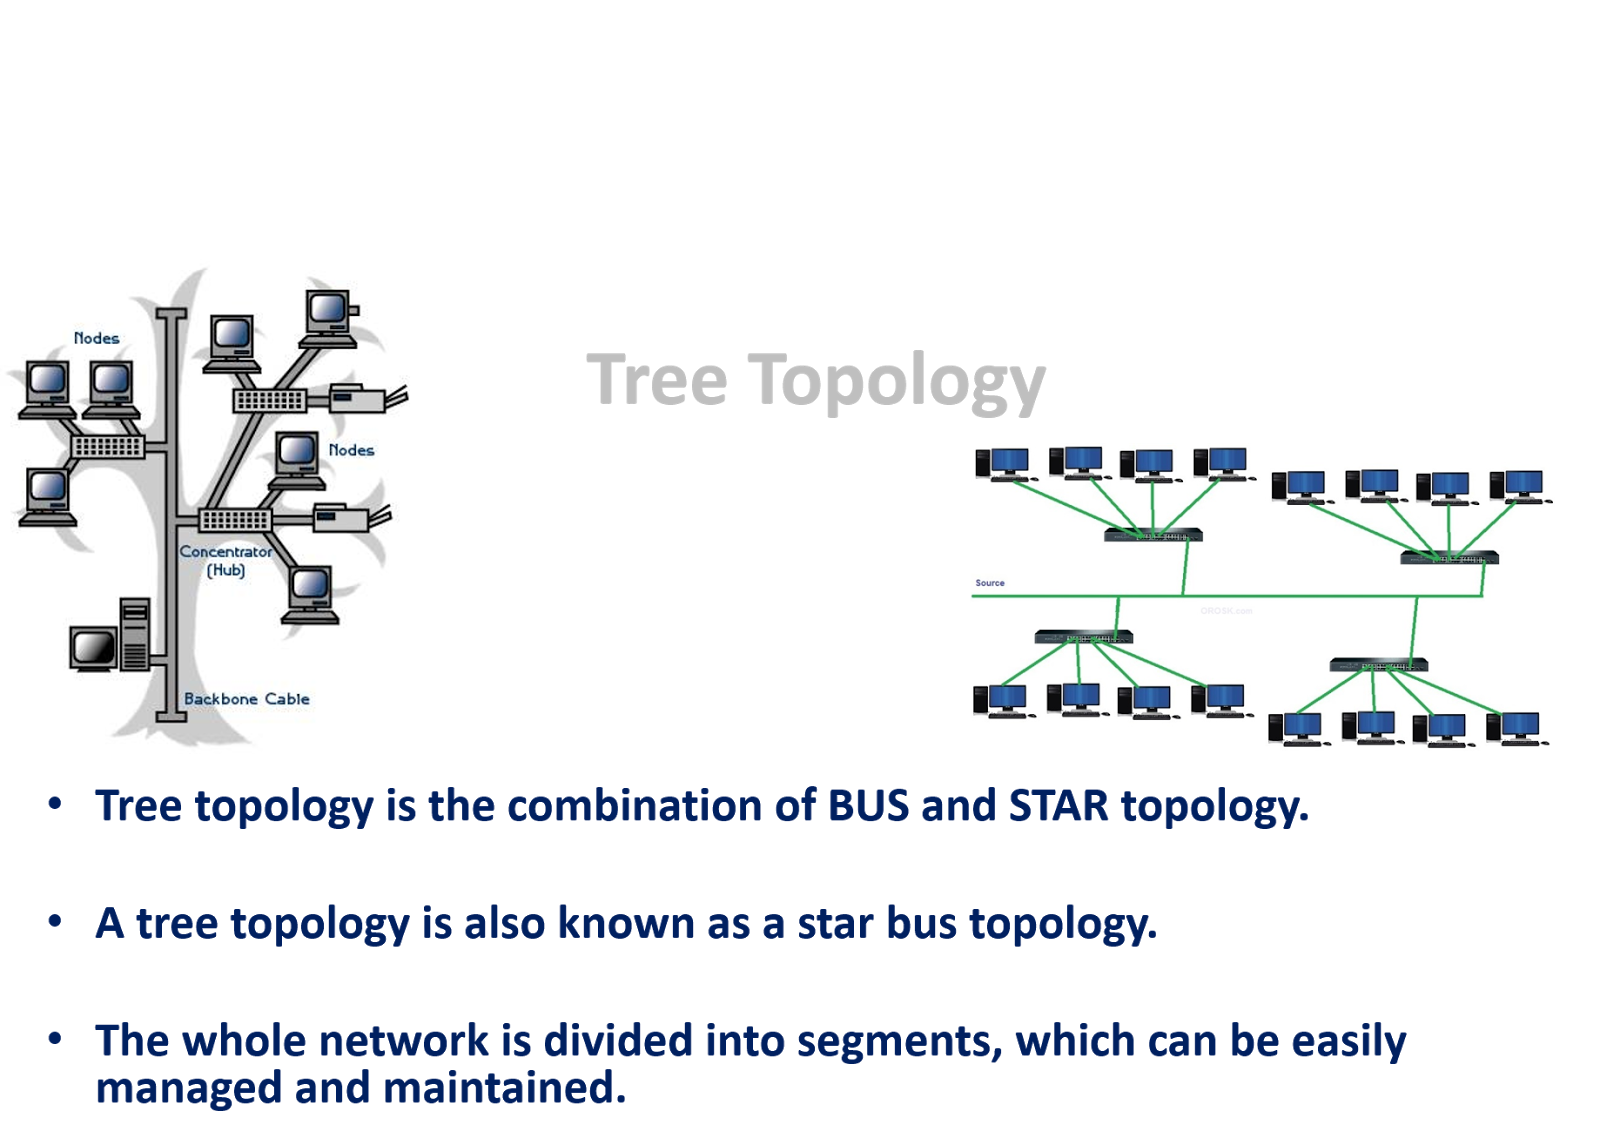 Advantages And Disadvantages Of Star Topology Diagram F150 Wiring 2002 Network Topologies Its